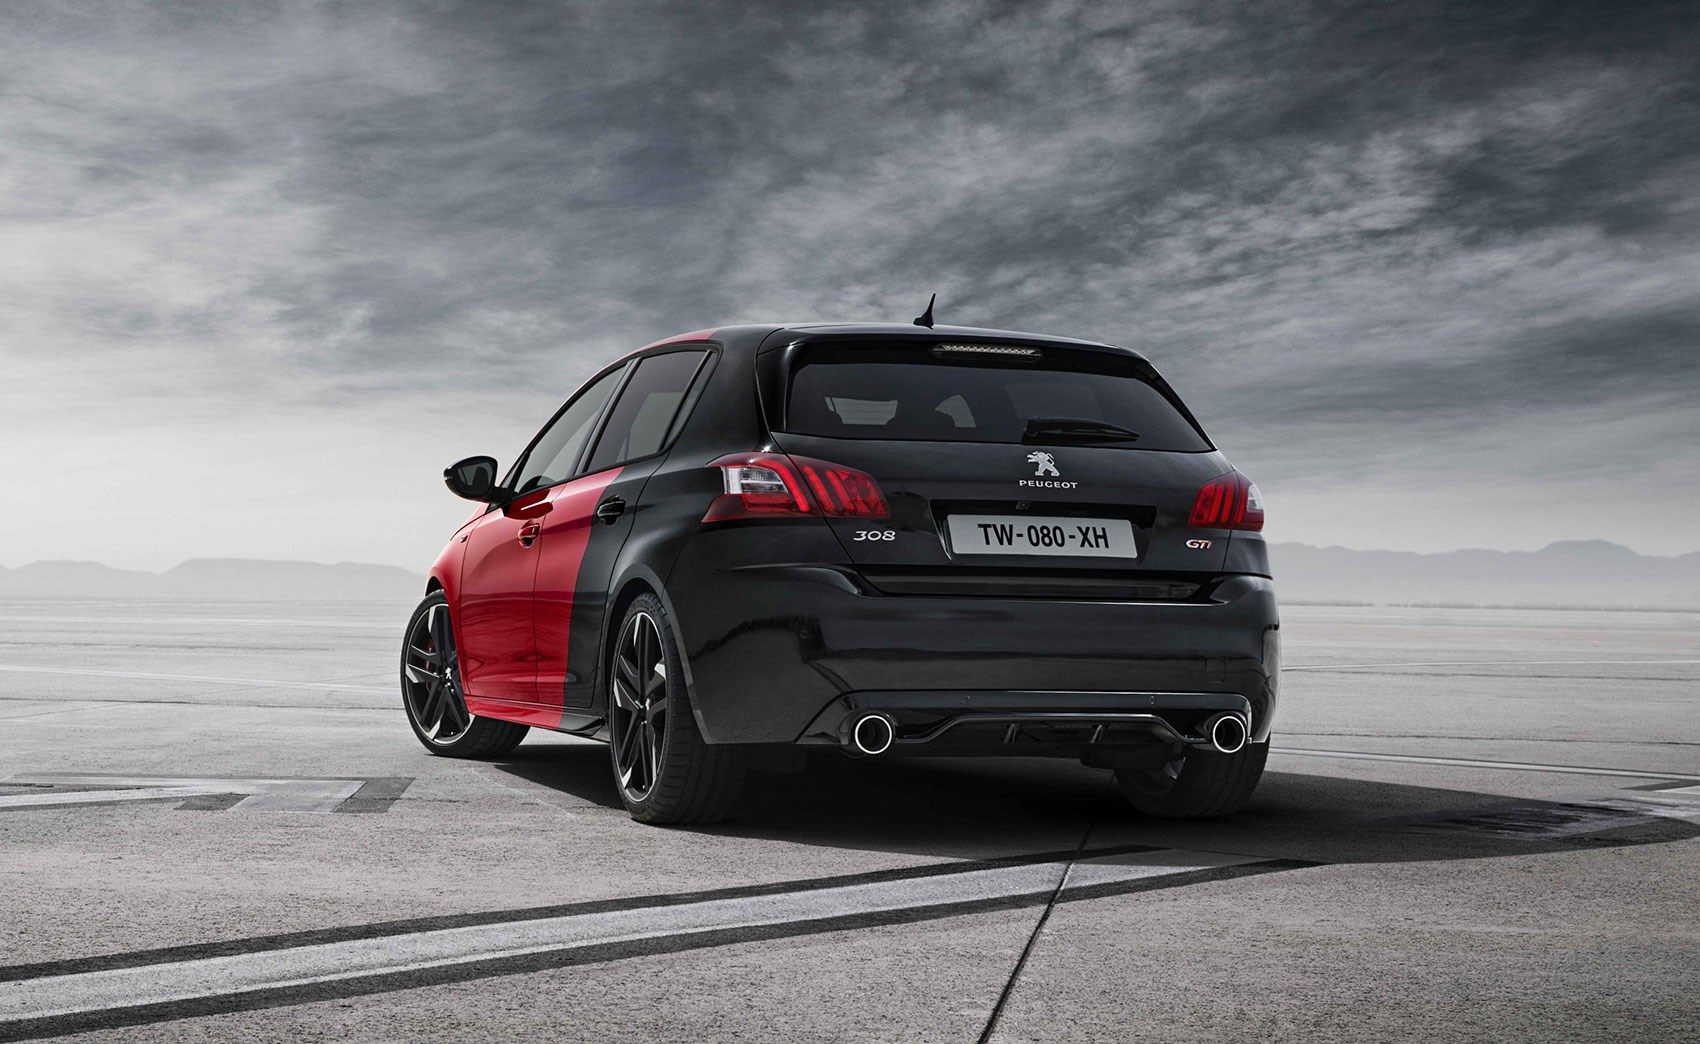 peugeot 308 gti 2015 the french go golf bashing by car magazine. Black Bedroom Furniture Sets. Home Design Ideas